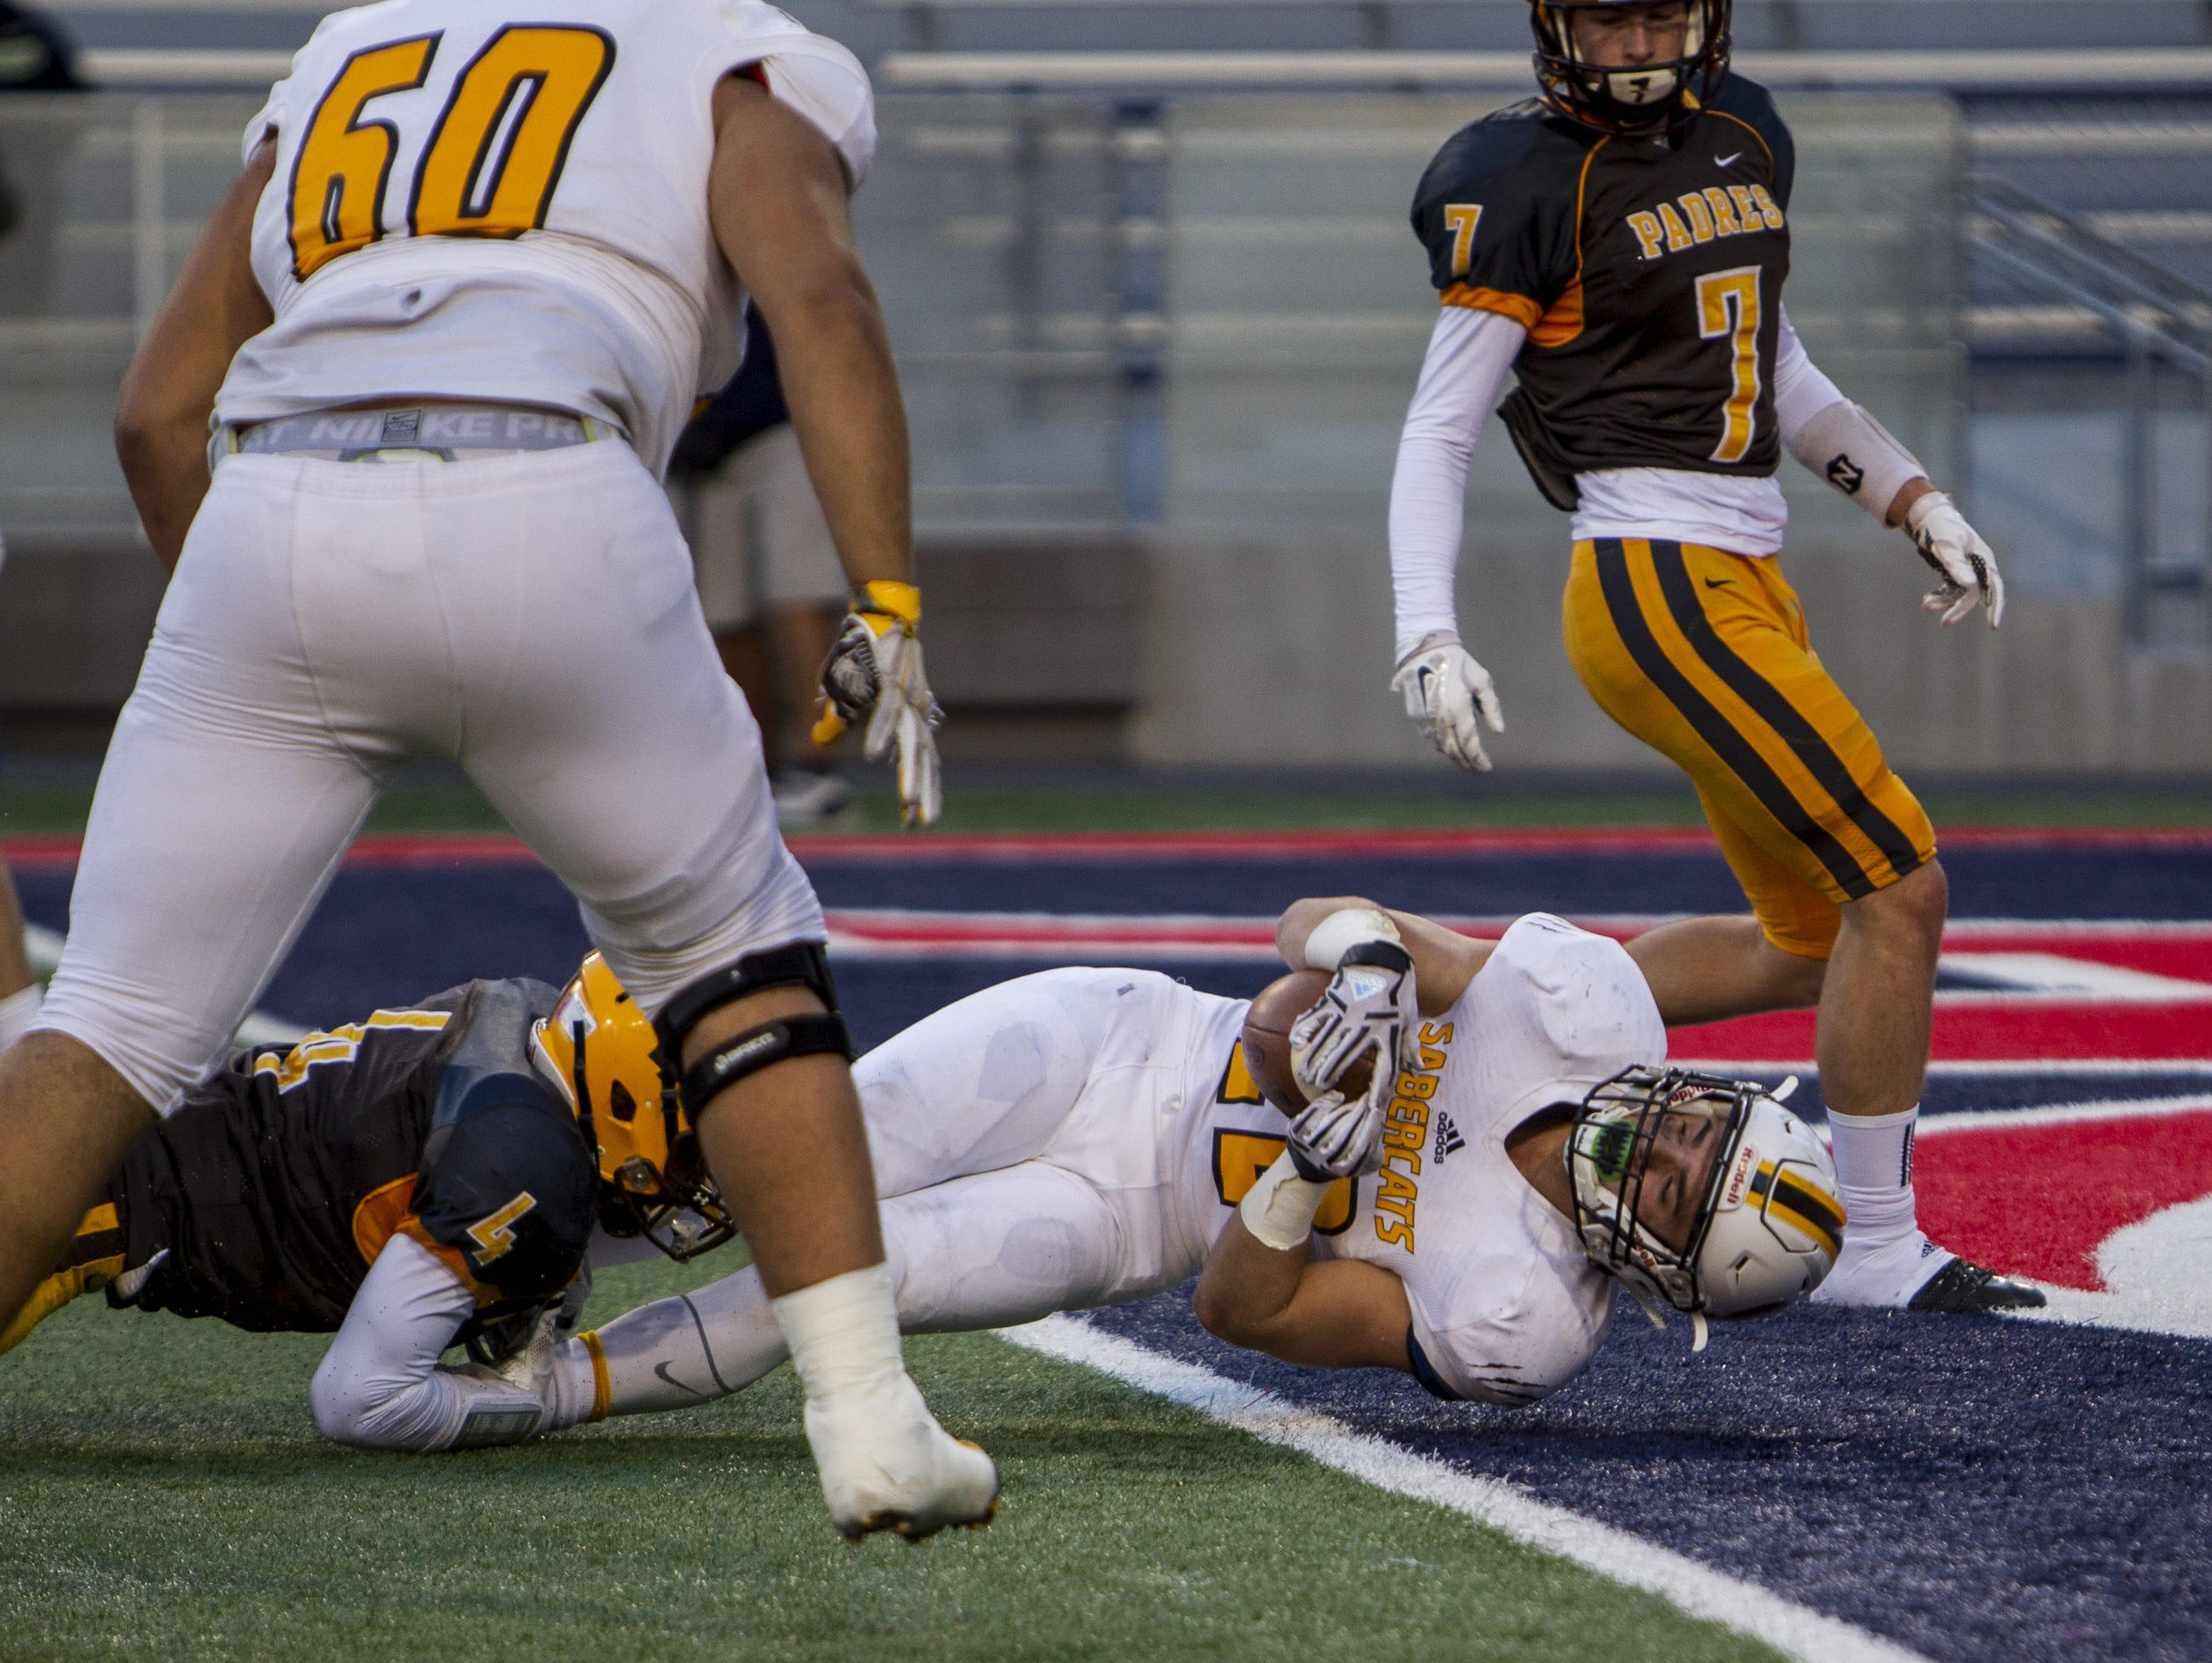 Scottsdale Saguaro's Stone Matthews rushes for a touchdown against Marcos de Niza in the second quarter during the Division II state championship on Saturday, Nov. 28, 2015 at Arizona Stadium in Tucson, Ariz.